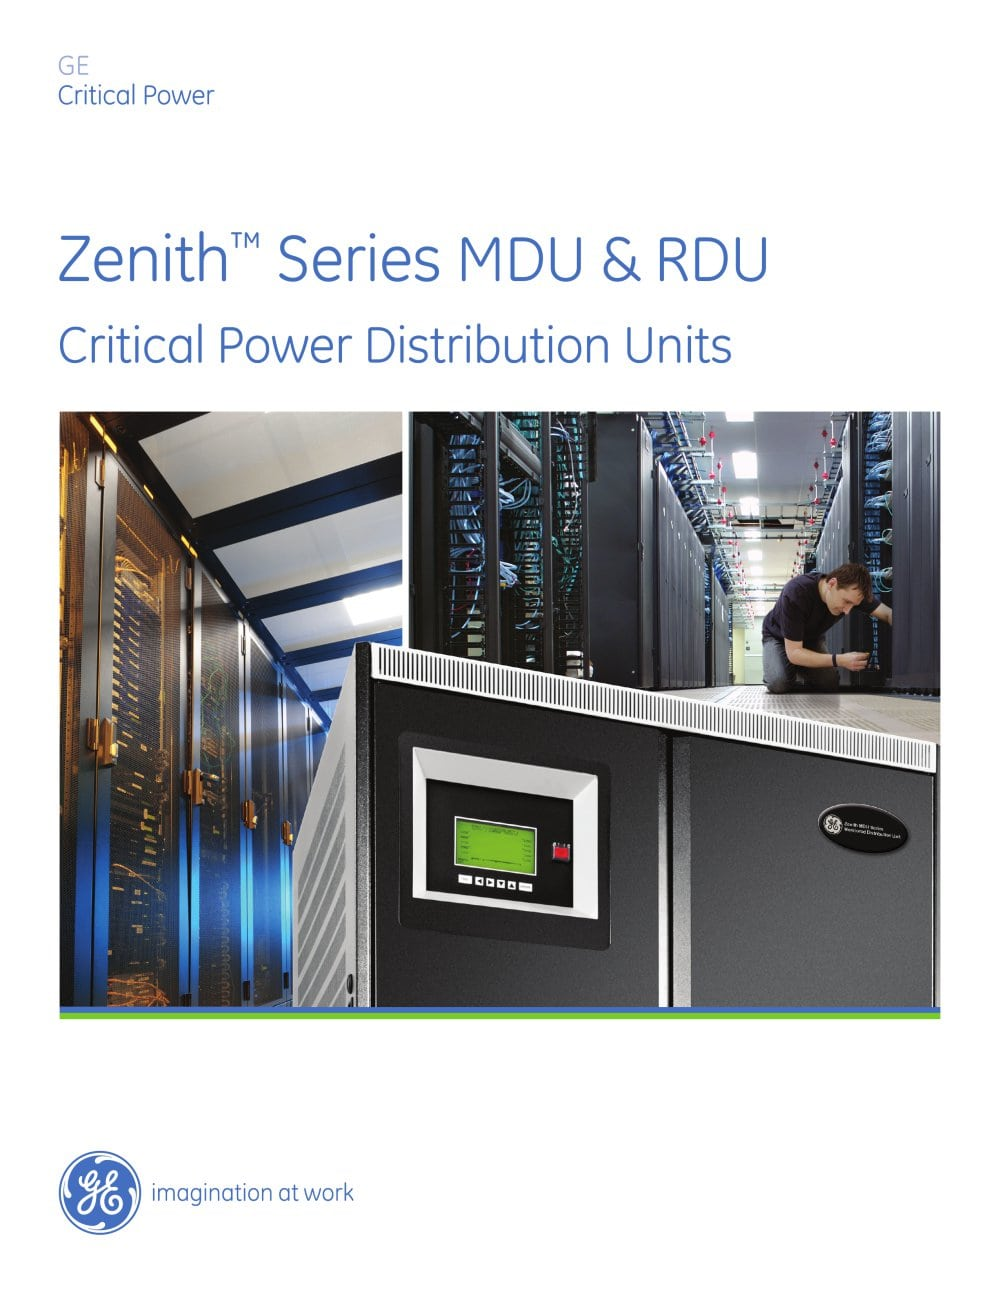 AC Power Products Overview - GE Critical Power - 1 / 12 Pages